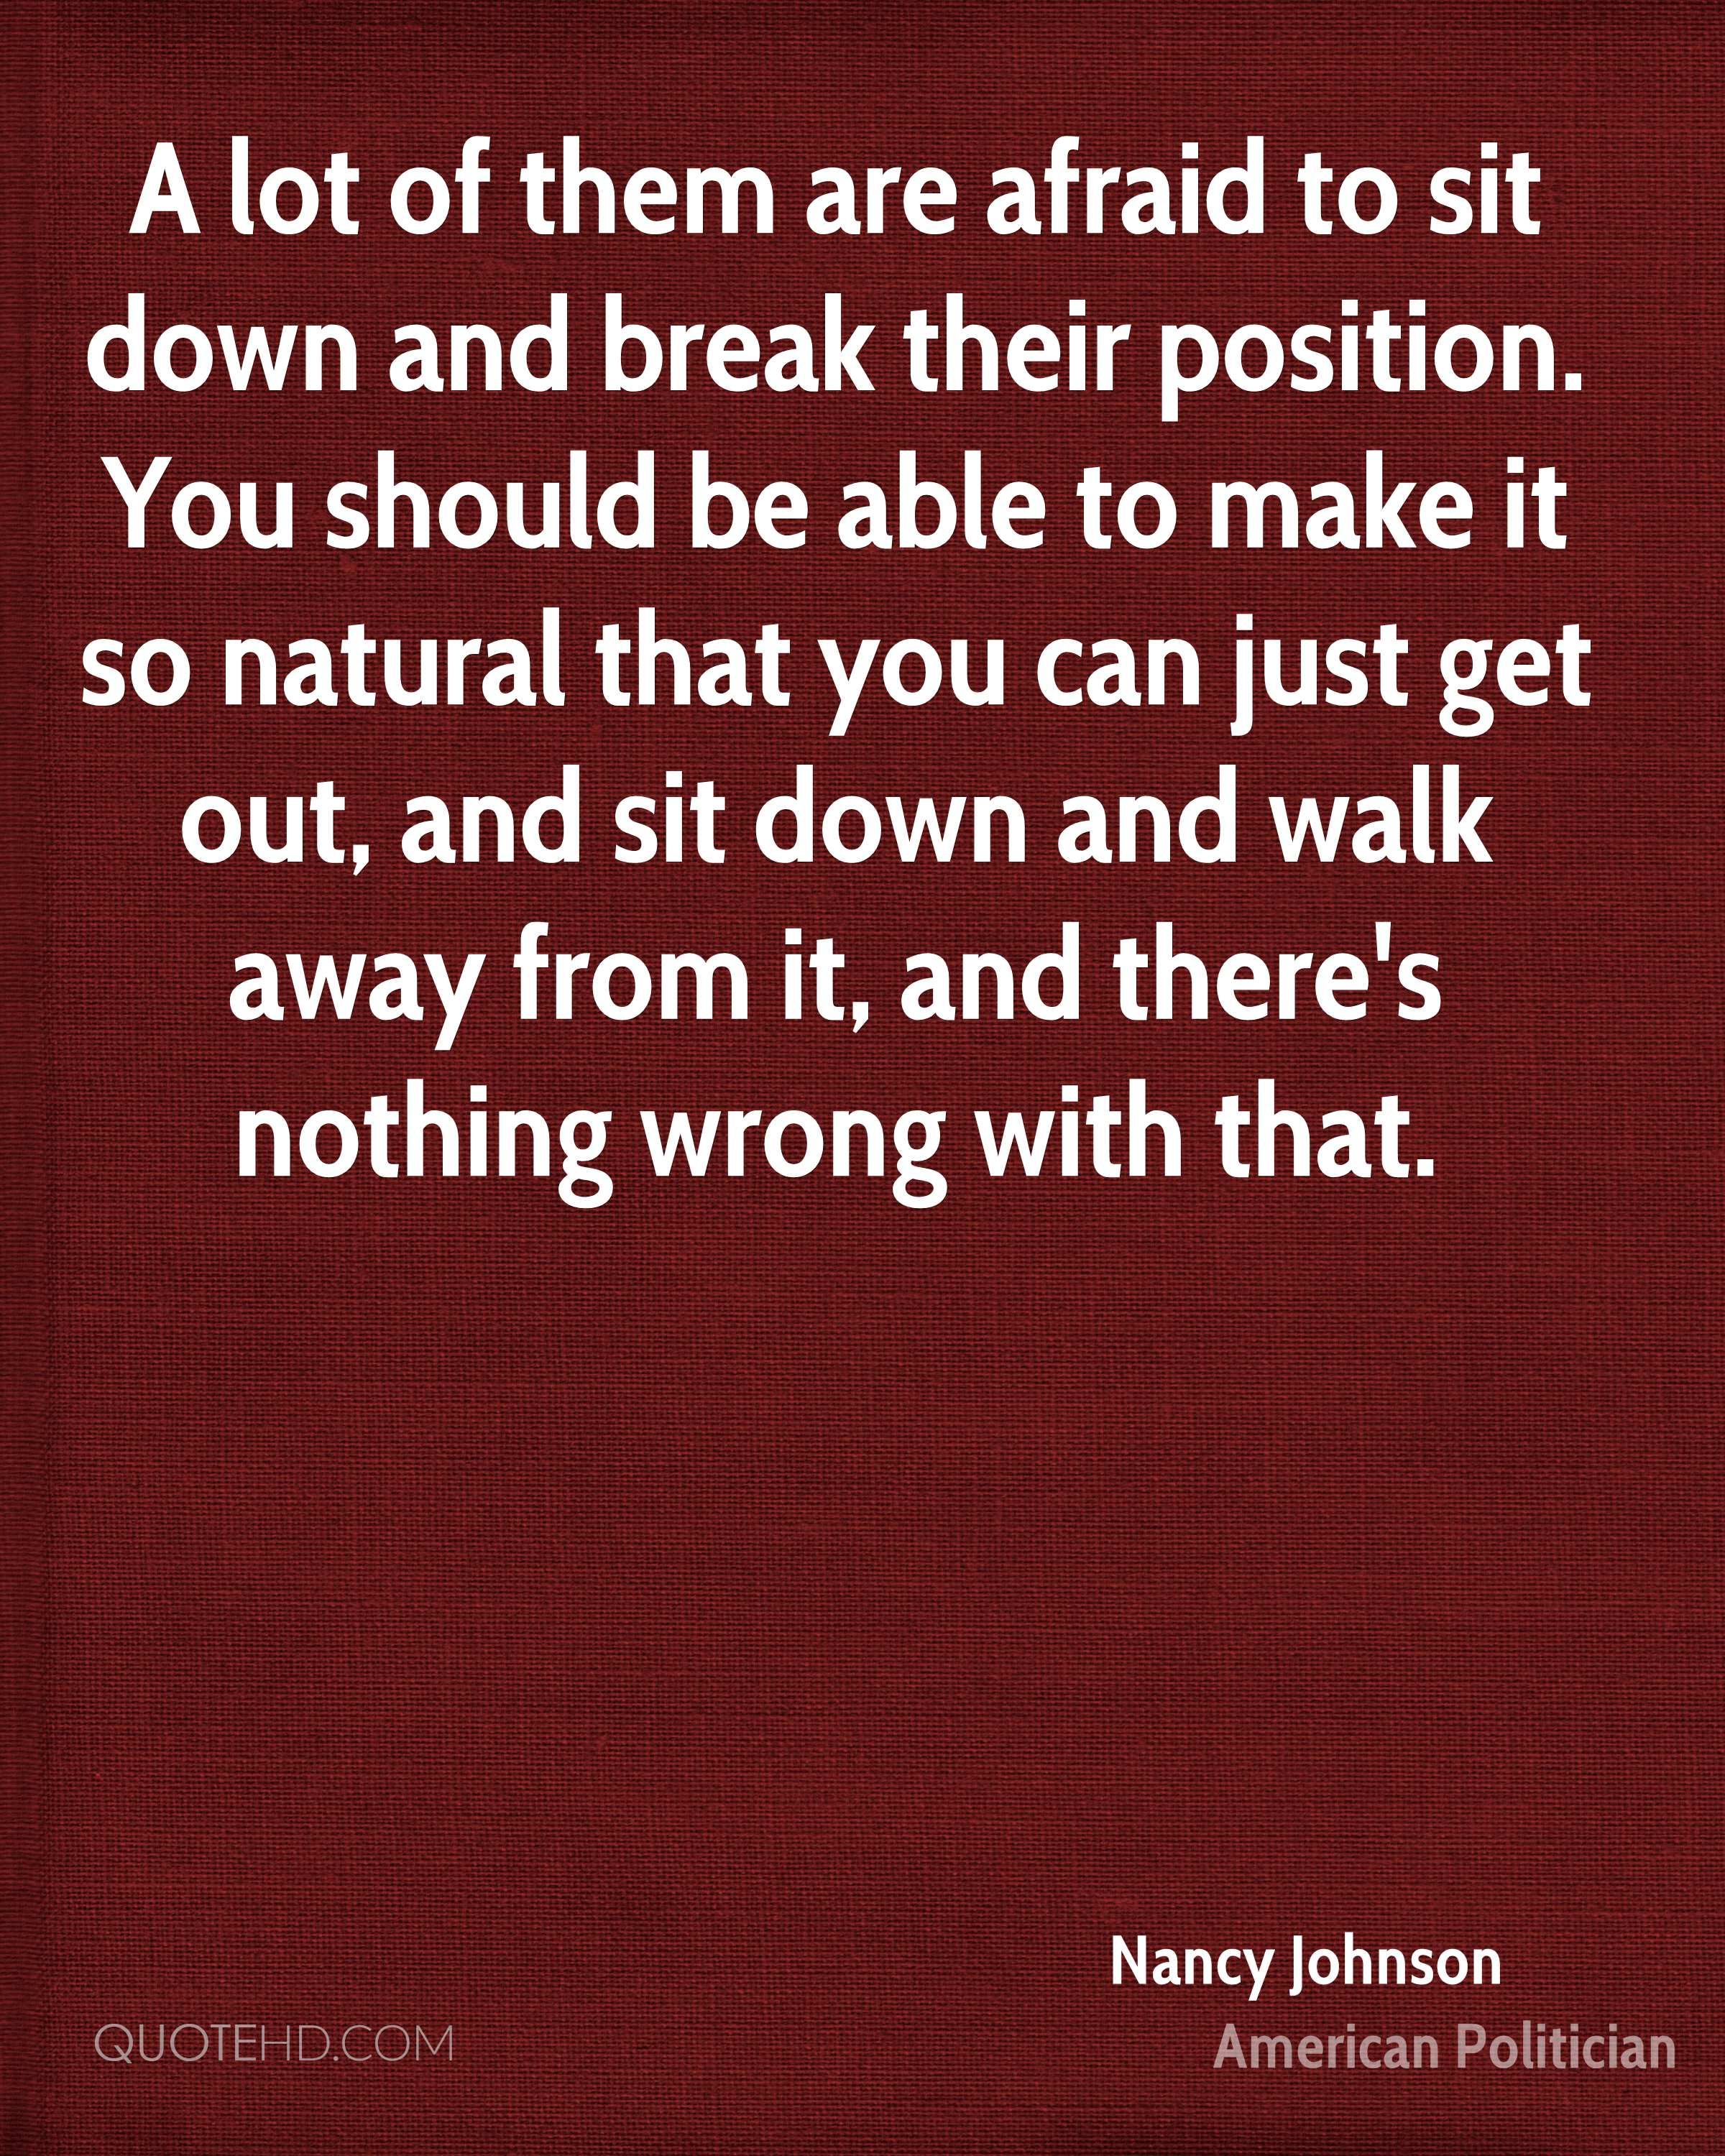 A lot of them are afraid to sit down and break their position. You should be able to make it so natural that you can just get out, and sit down and walk away from it, and there's nothing wrong with that.